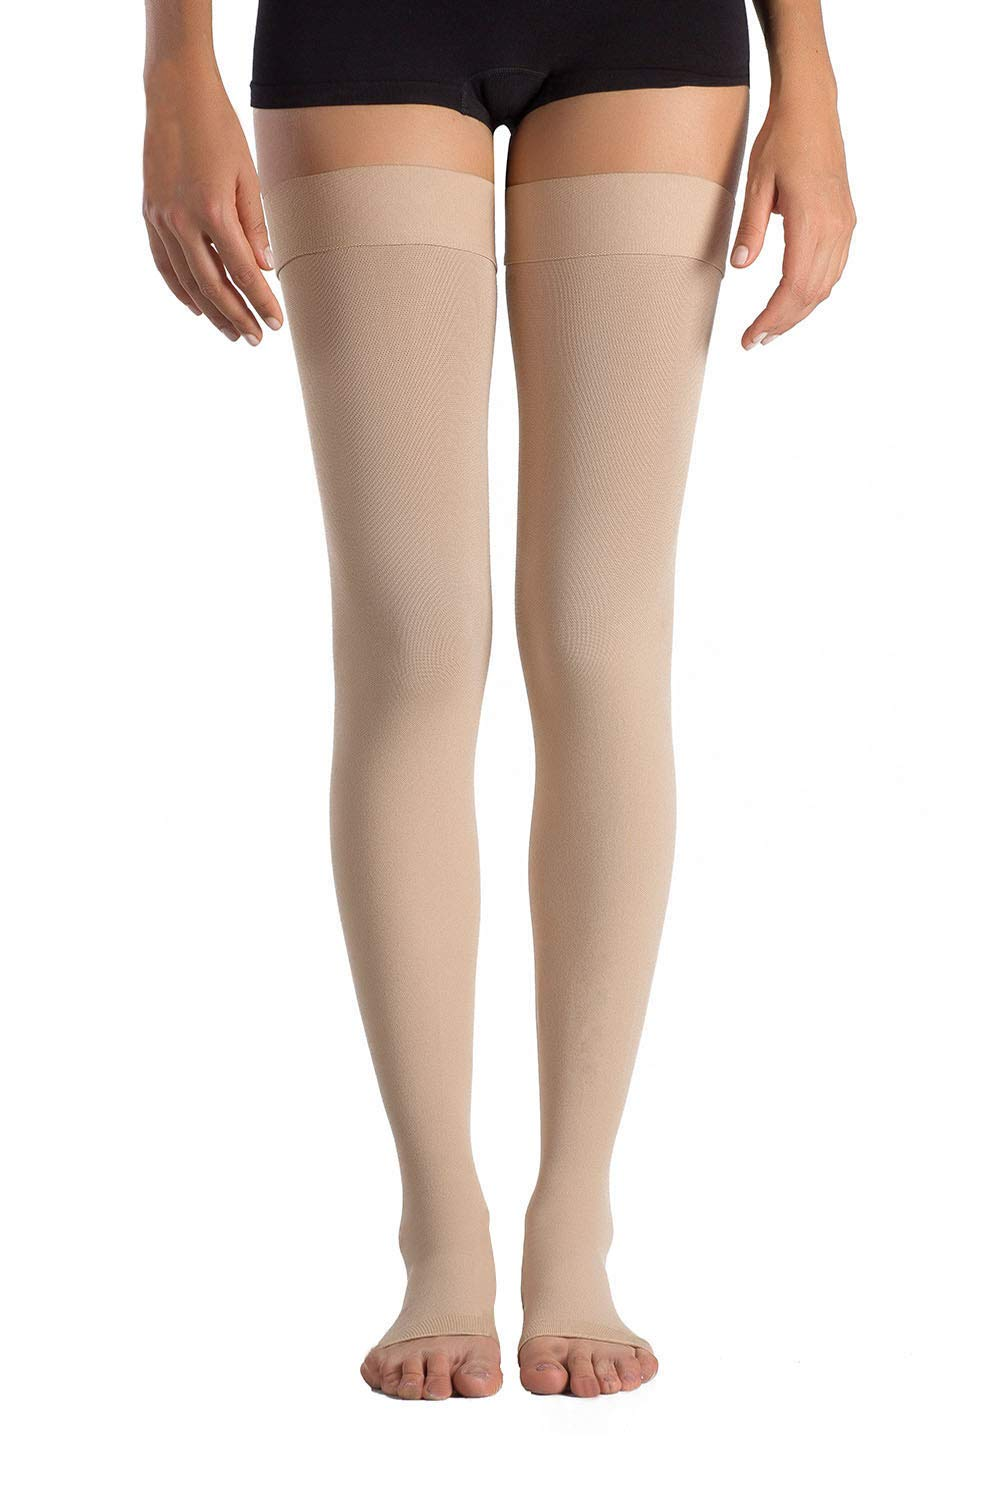 +MD Thigh High Graduated Compression Stockings Open-Toe 23-32mmHg Firm Medical Support Socks for Varicose Veins, Edema, Spider Veins Nudes